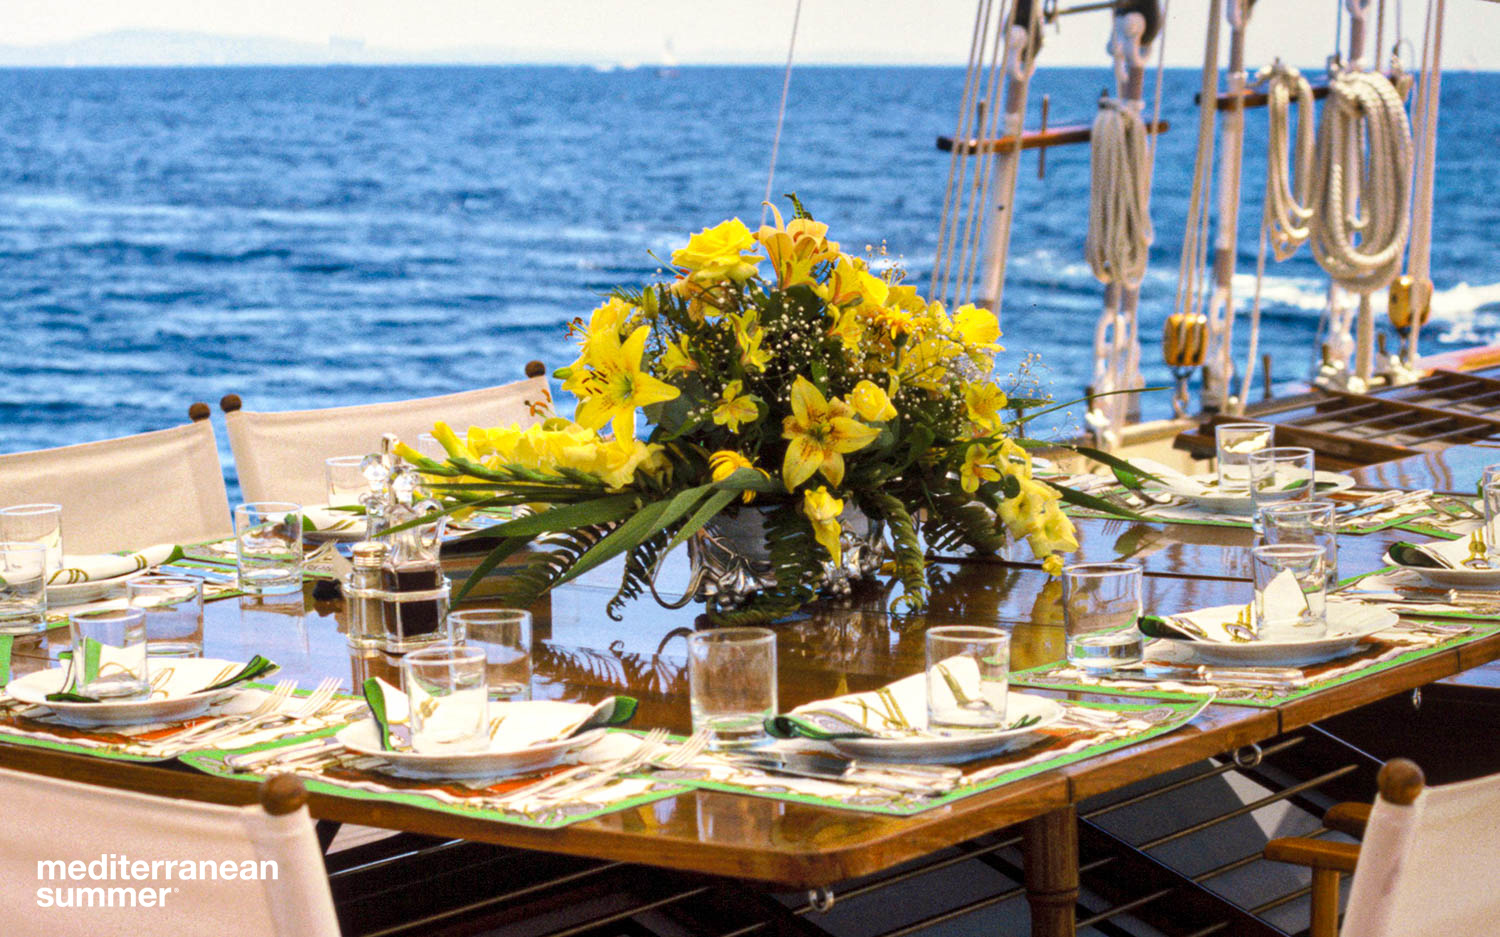 The owner's table is set for lunch amidships on board  S/Y Serenity  while at anchor in Cannes, France. Photo by David Shalleck